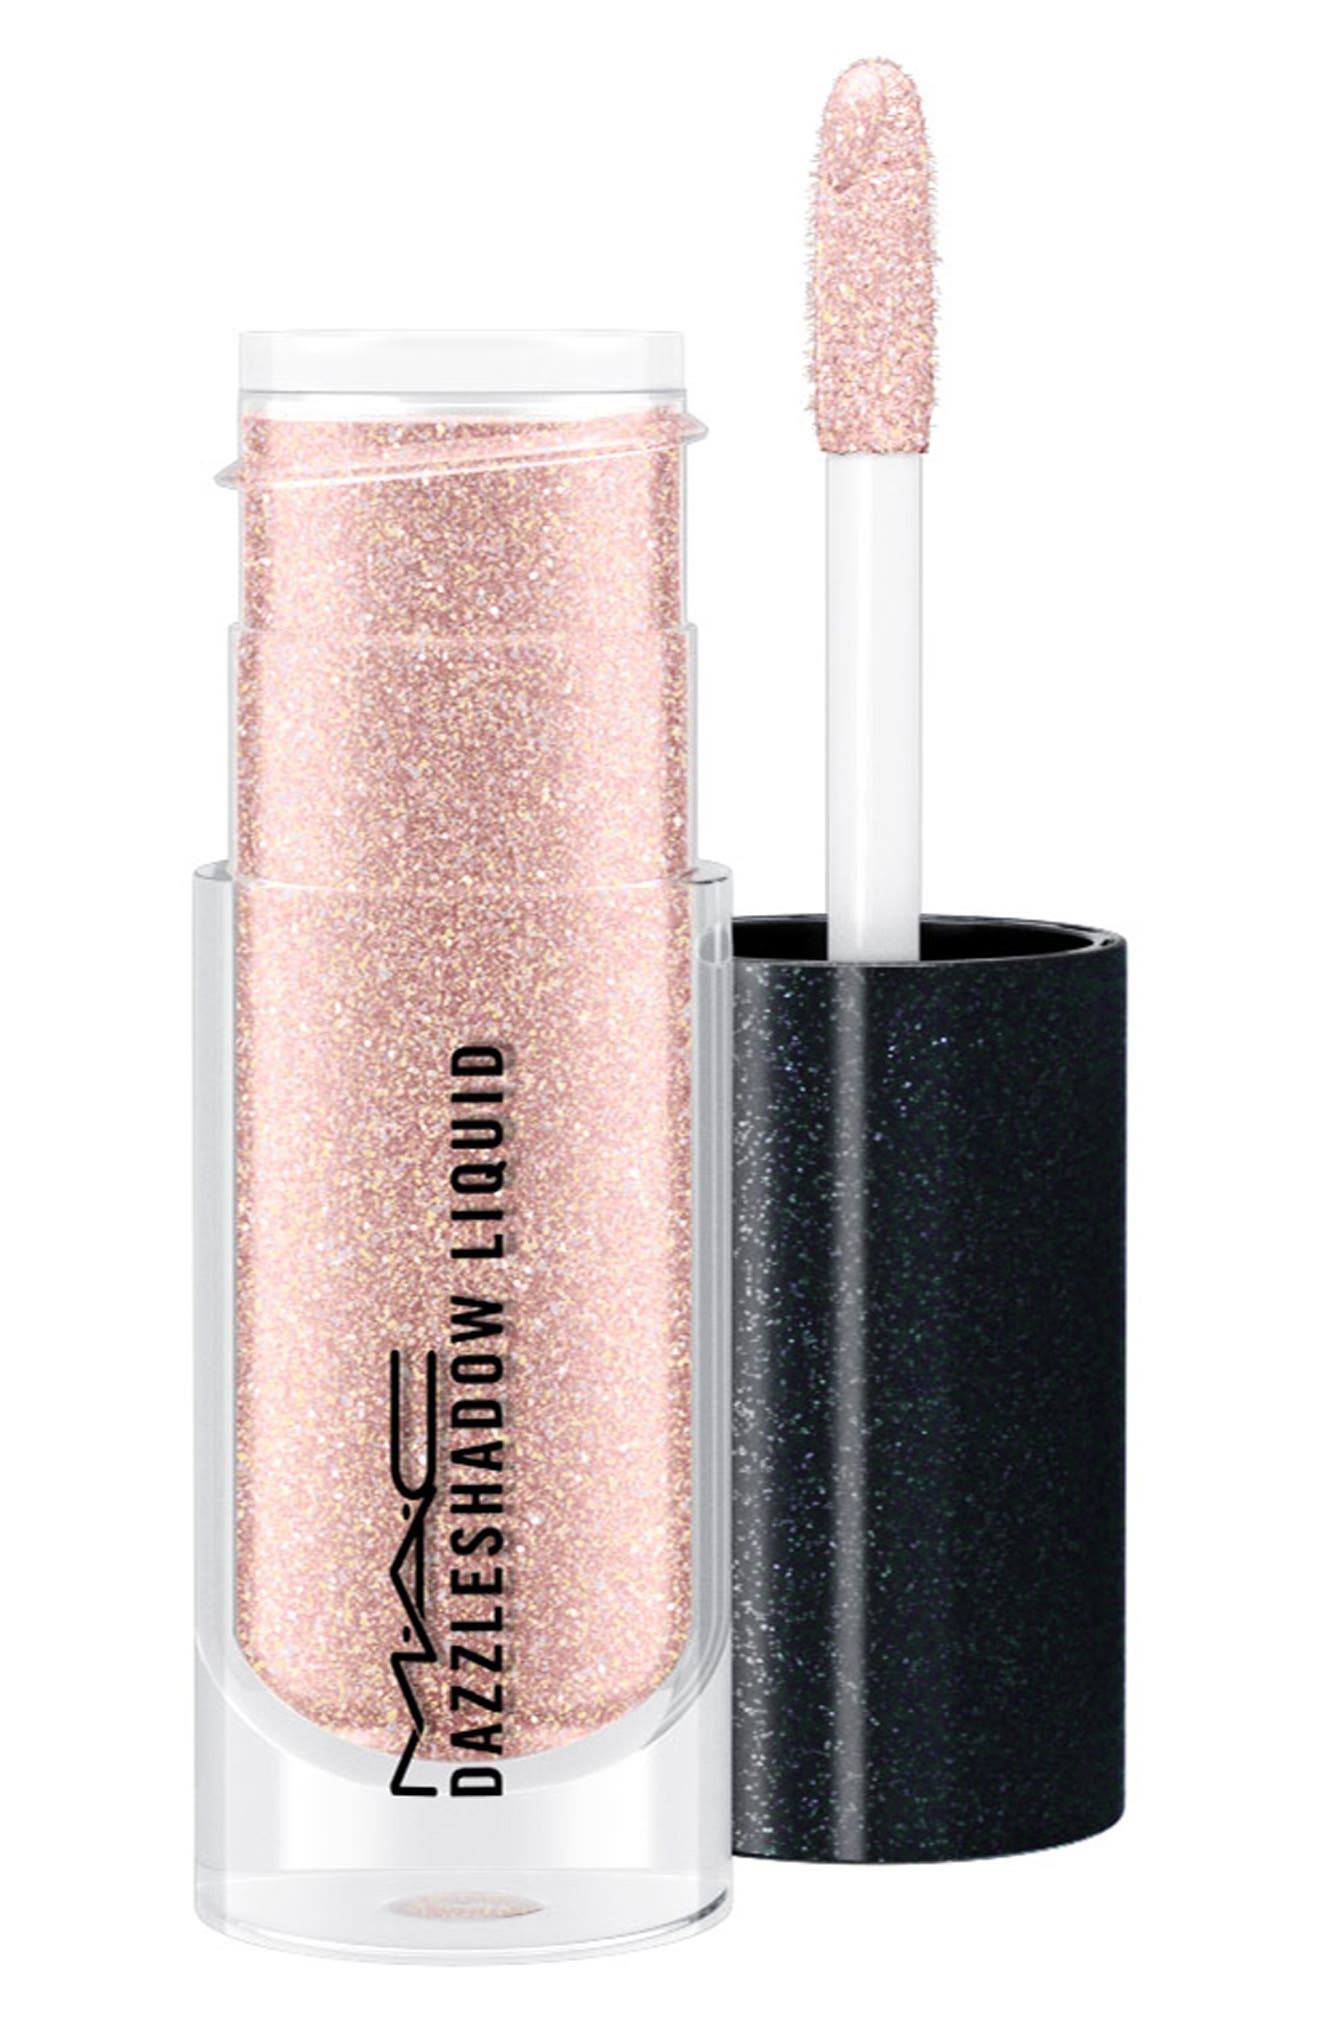 What it is: An ultra-shiny liquid eyeshadow that glides across lids for a wash of brilliant color and keeps its splendor for up to eight hours. What it does: Get lost in eyes that tantalize, mesmerize and glamorize. This cooling formula sets quickly for the ultimate second-skin texture that feels ultrasoft on your lids. The long-wearing formula lasts for up to eight hours and provides even color payoff while delivering stay-true color and a